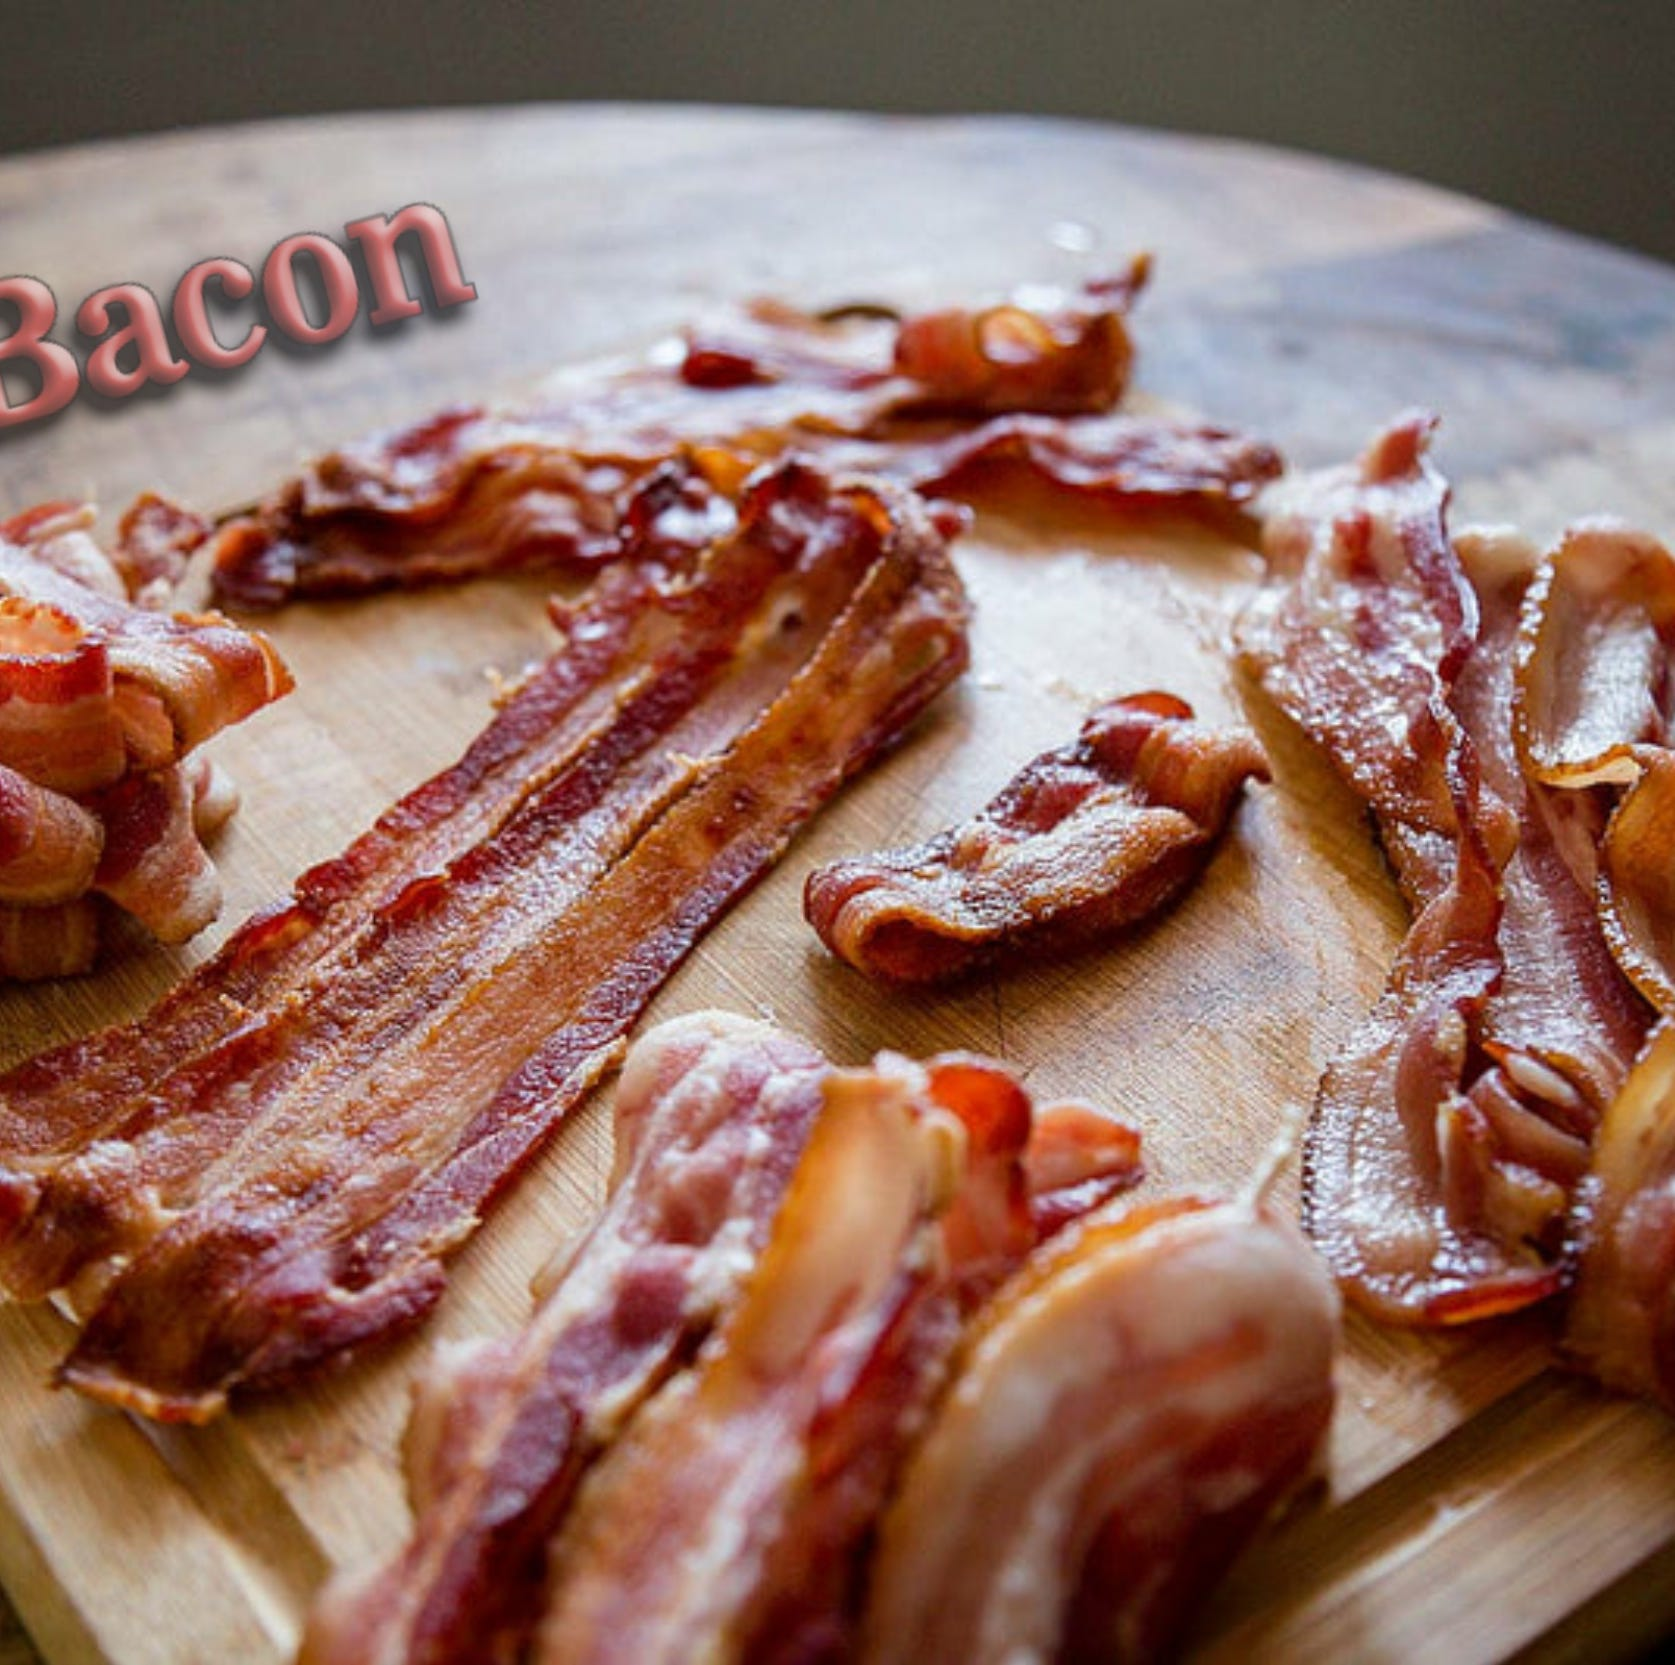 Bacon, bacon and more bacon: Time for the Bacon and BBQ Festival